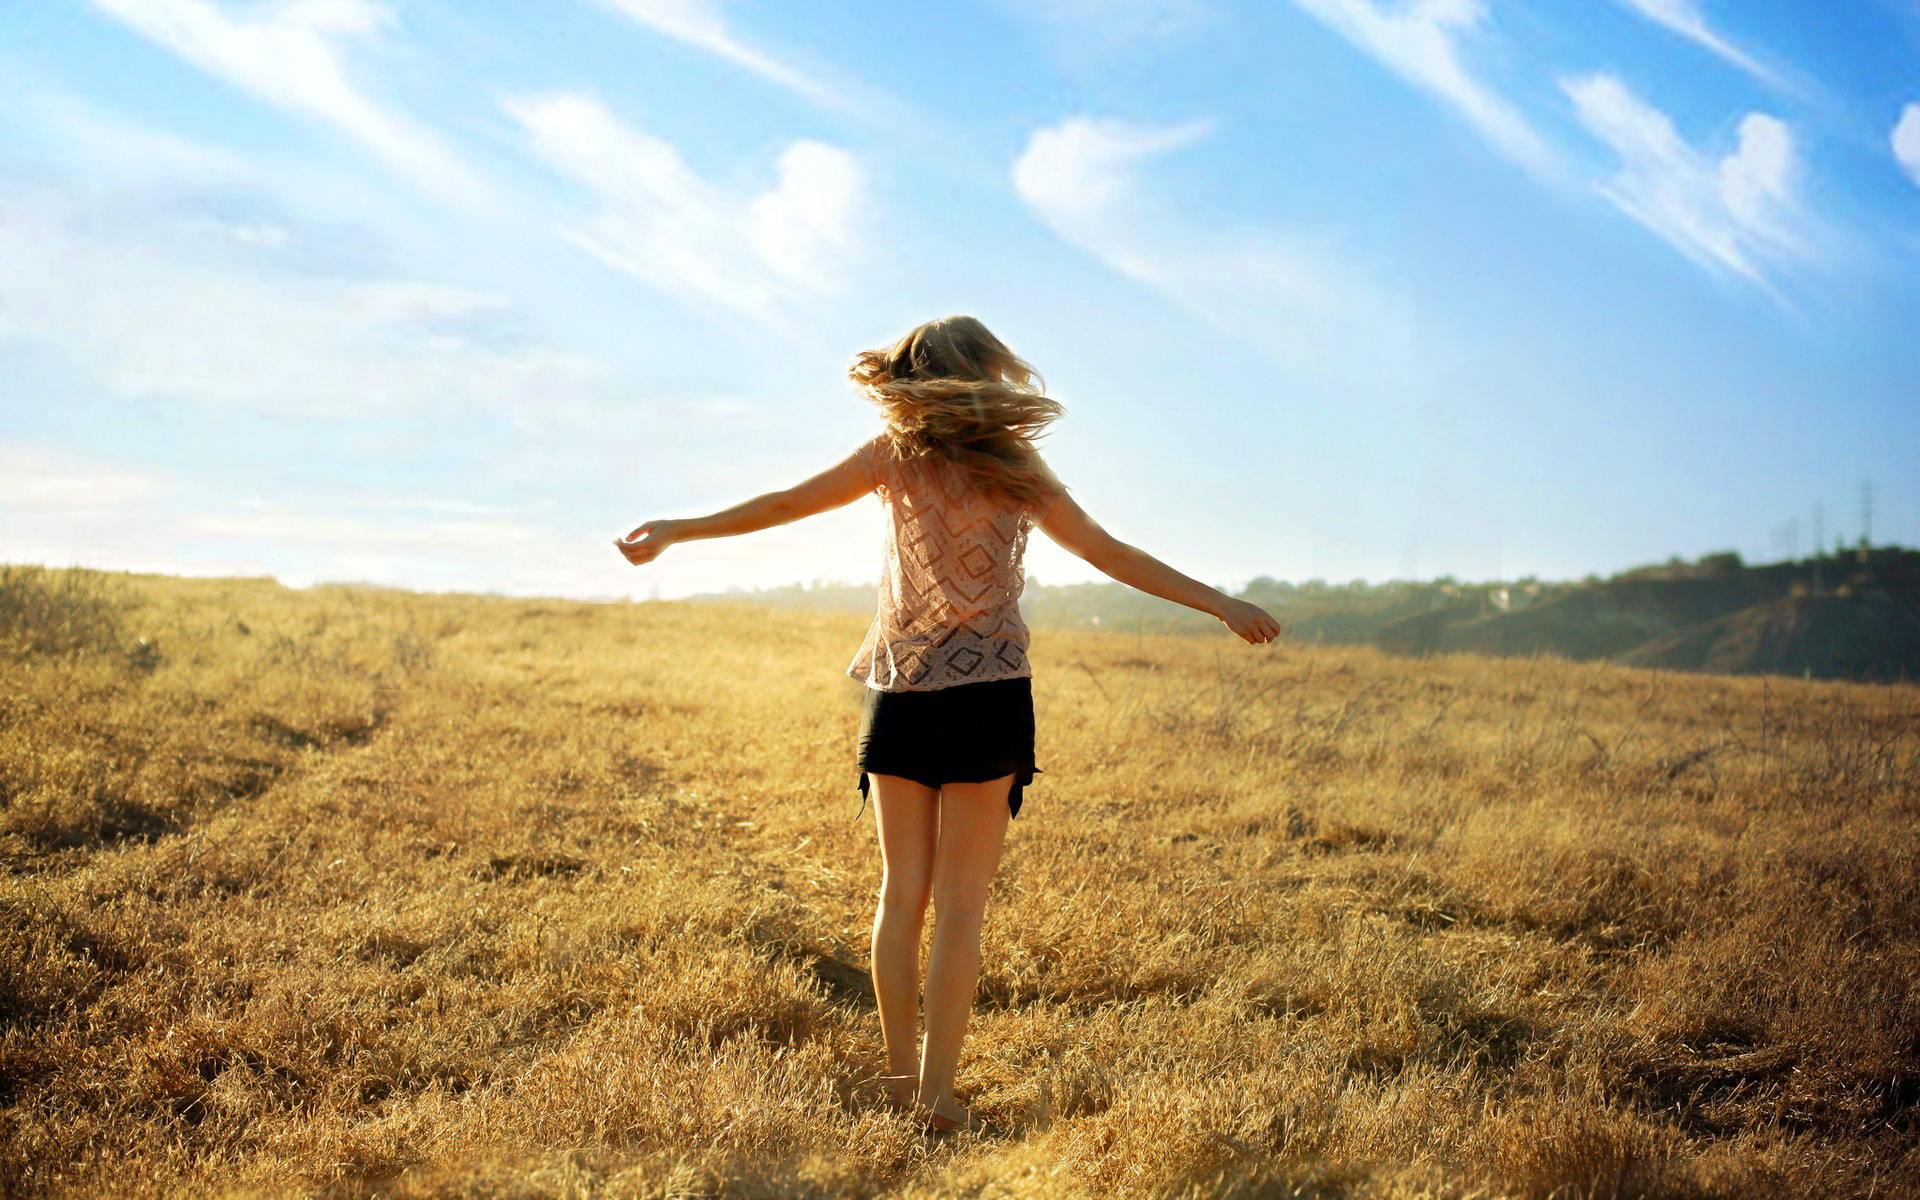 GIRL-SUMMER-FIELDS